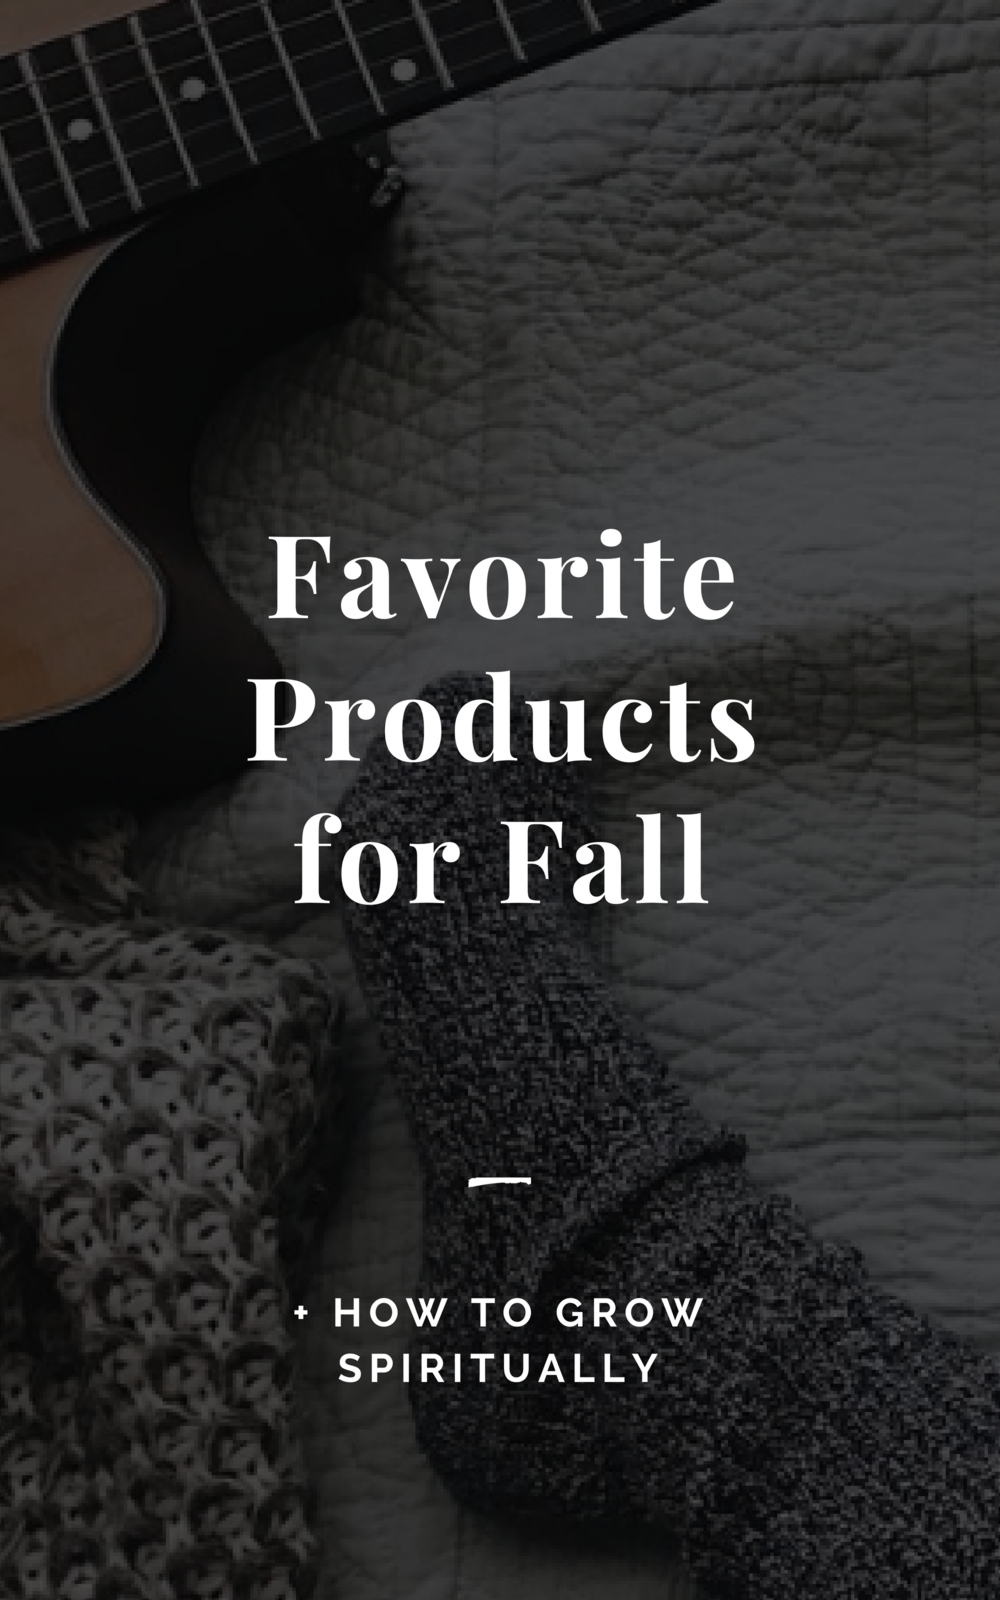 Favorite Products for Fall